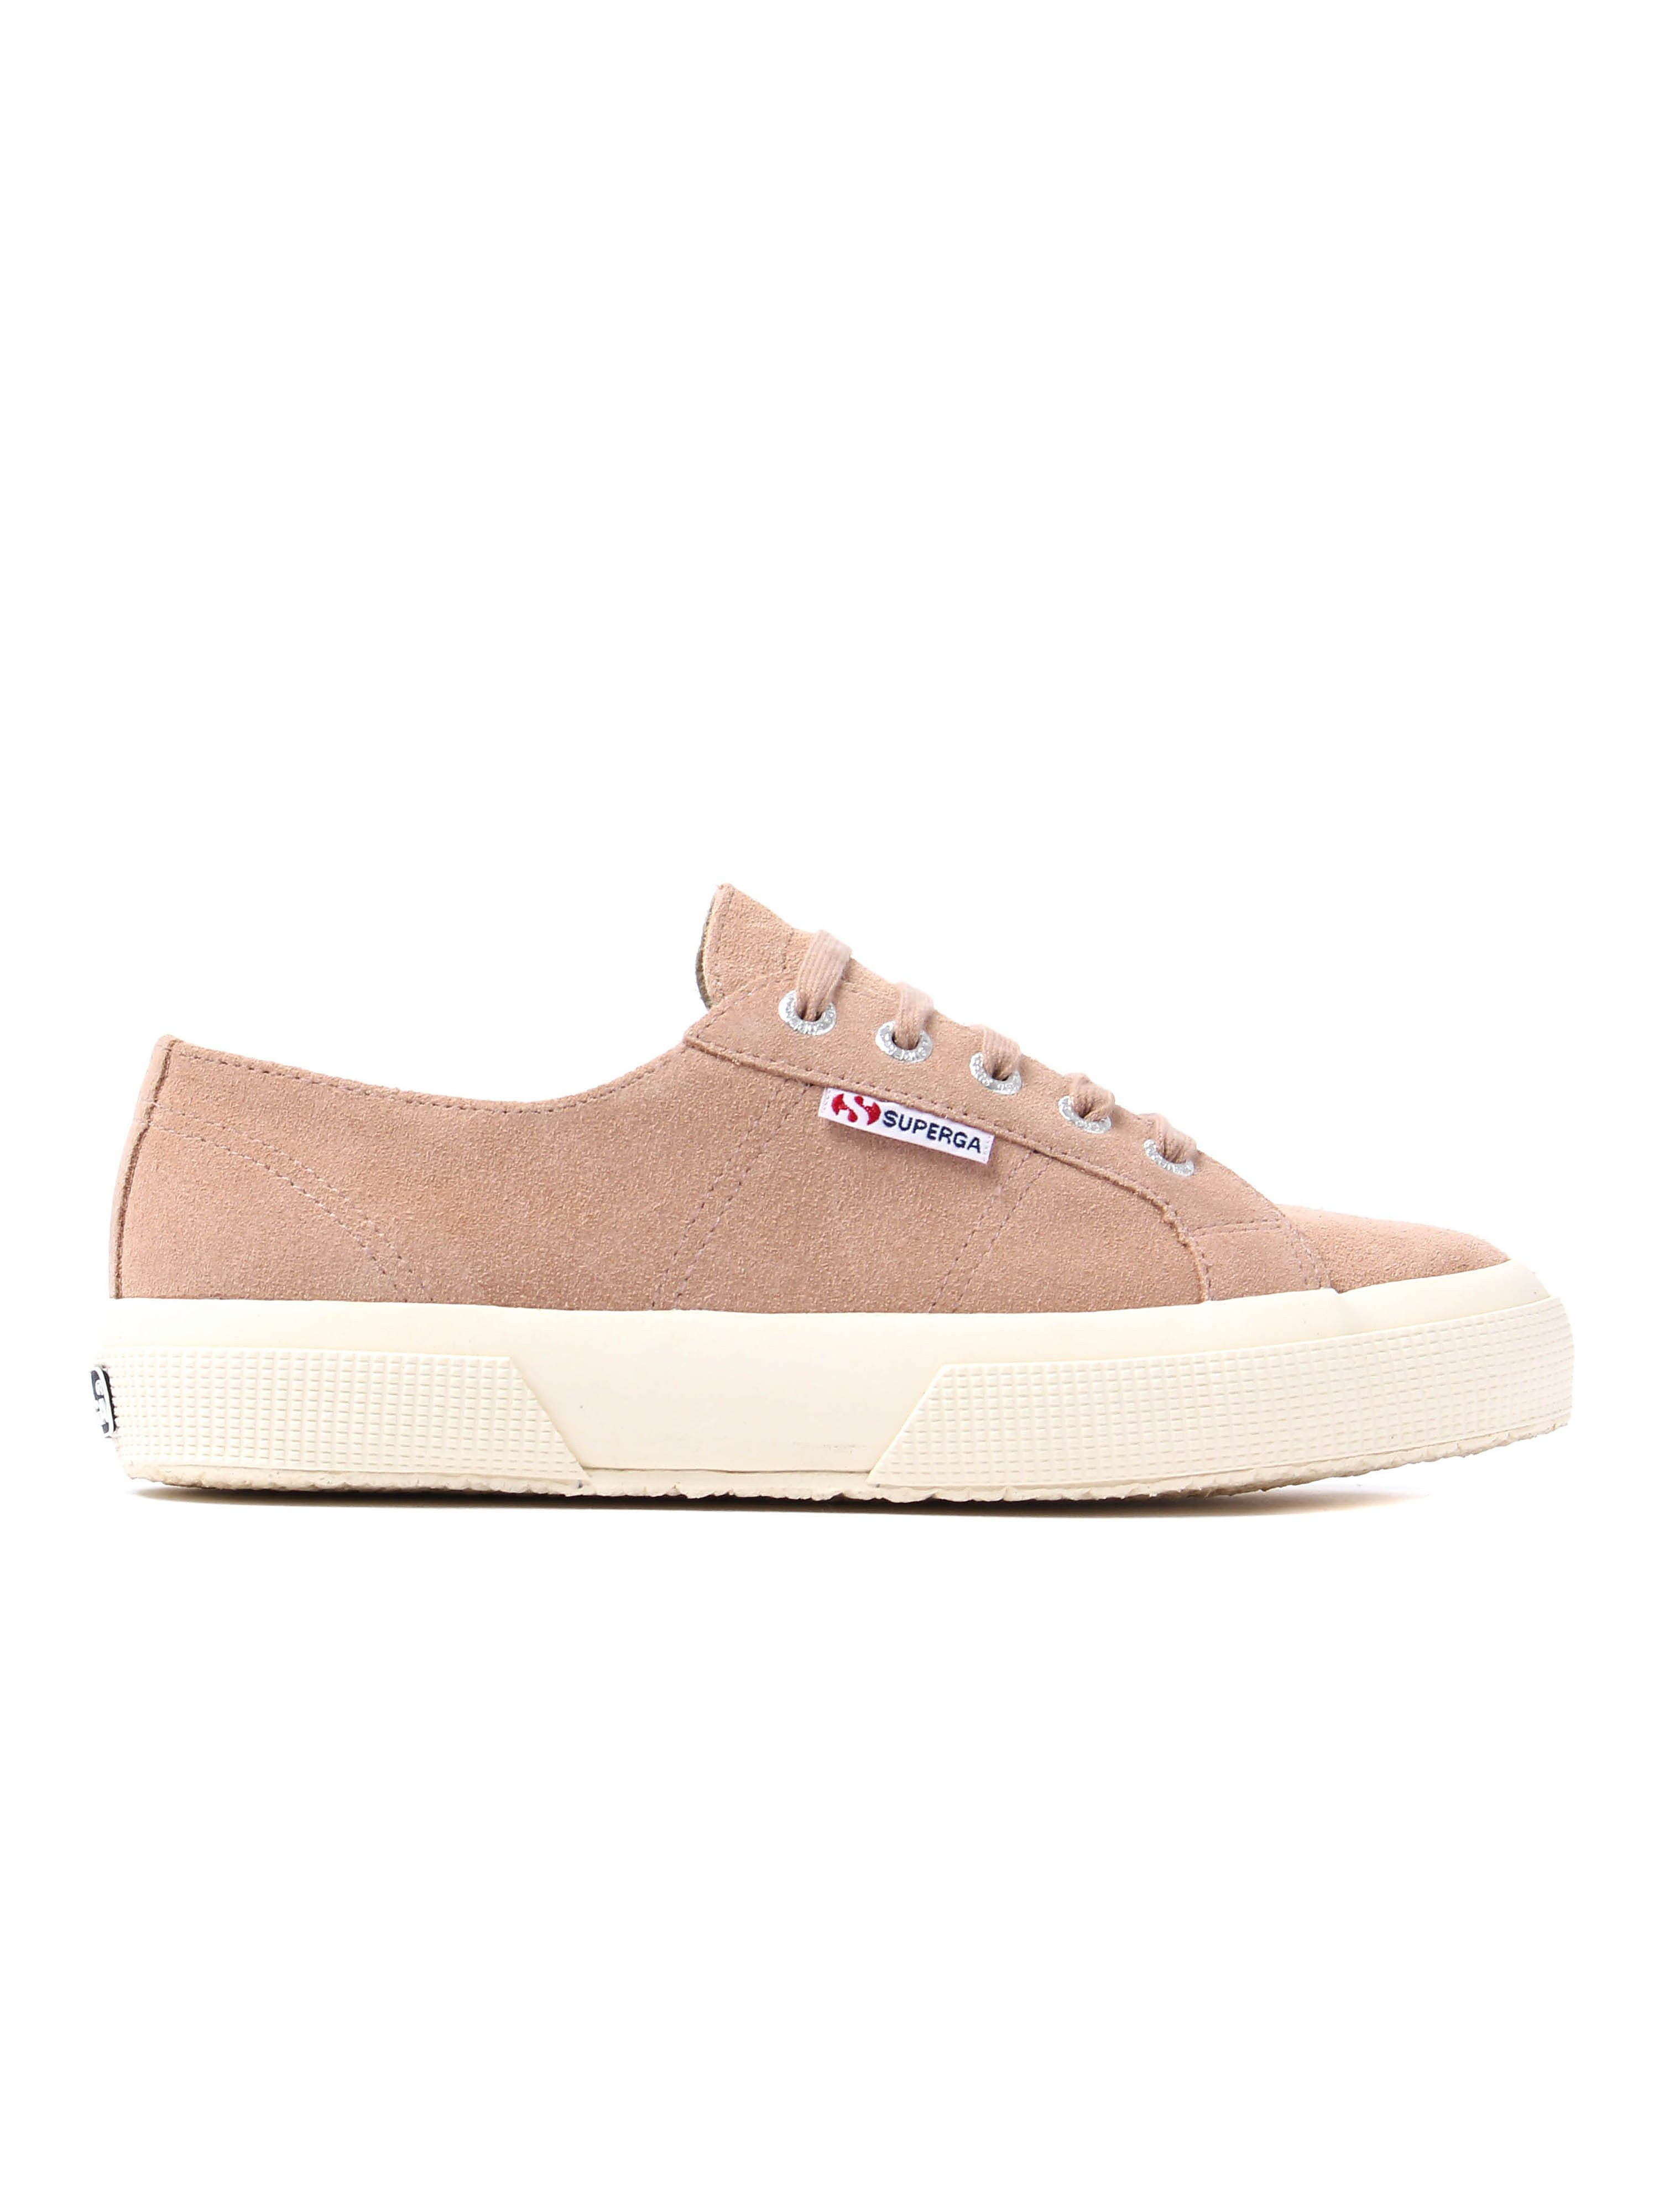 Superga Women's 2750 Sueu Trainers – Nude Suede